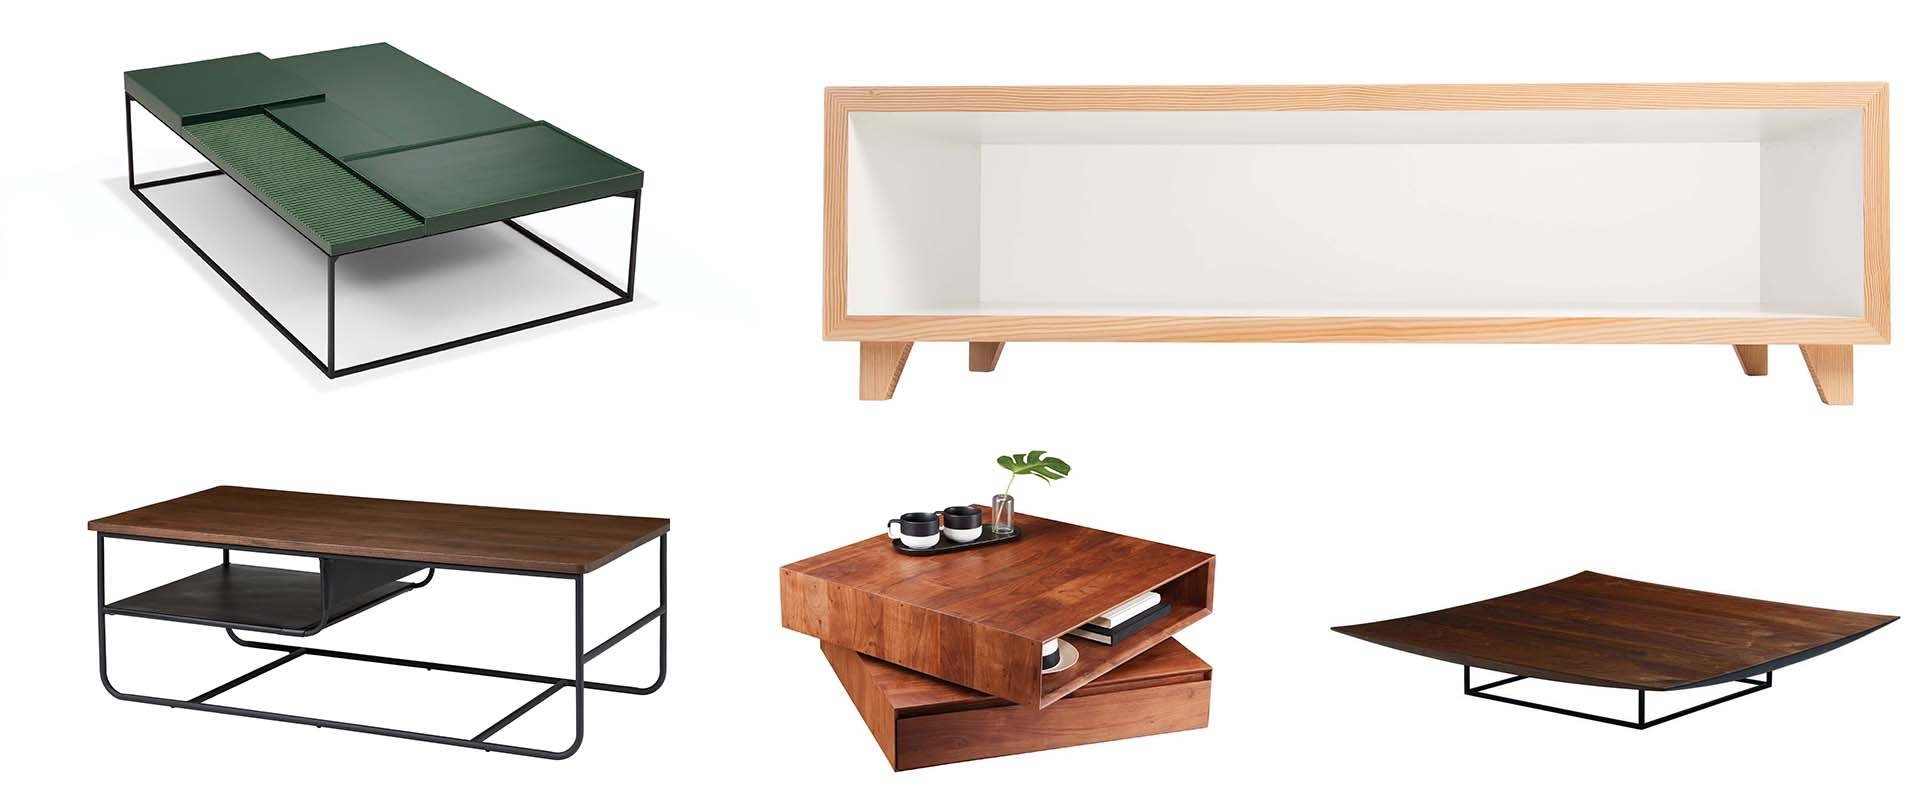 6 Scene Stealing Coffee Tables We Love – Western Living Magazine Regarding Spin Rotating Coffee Tables (View 3 of 30)